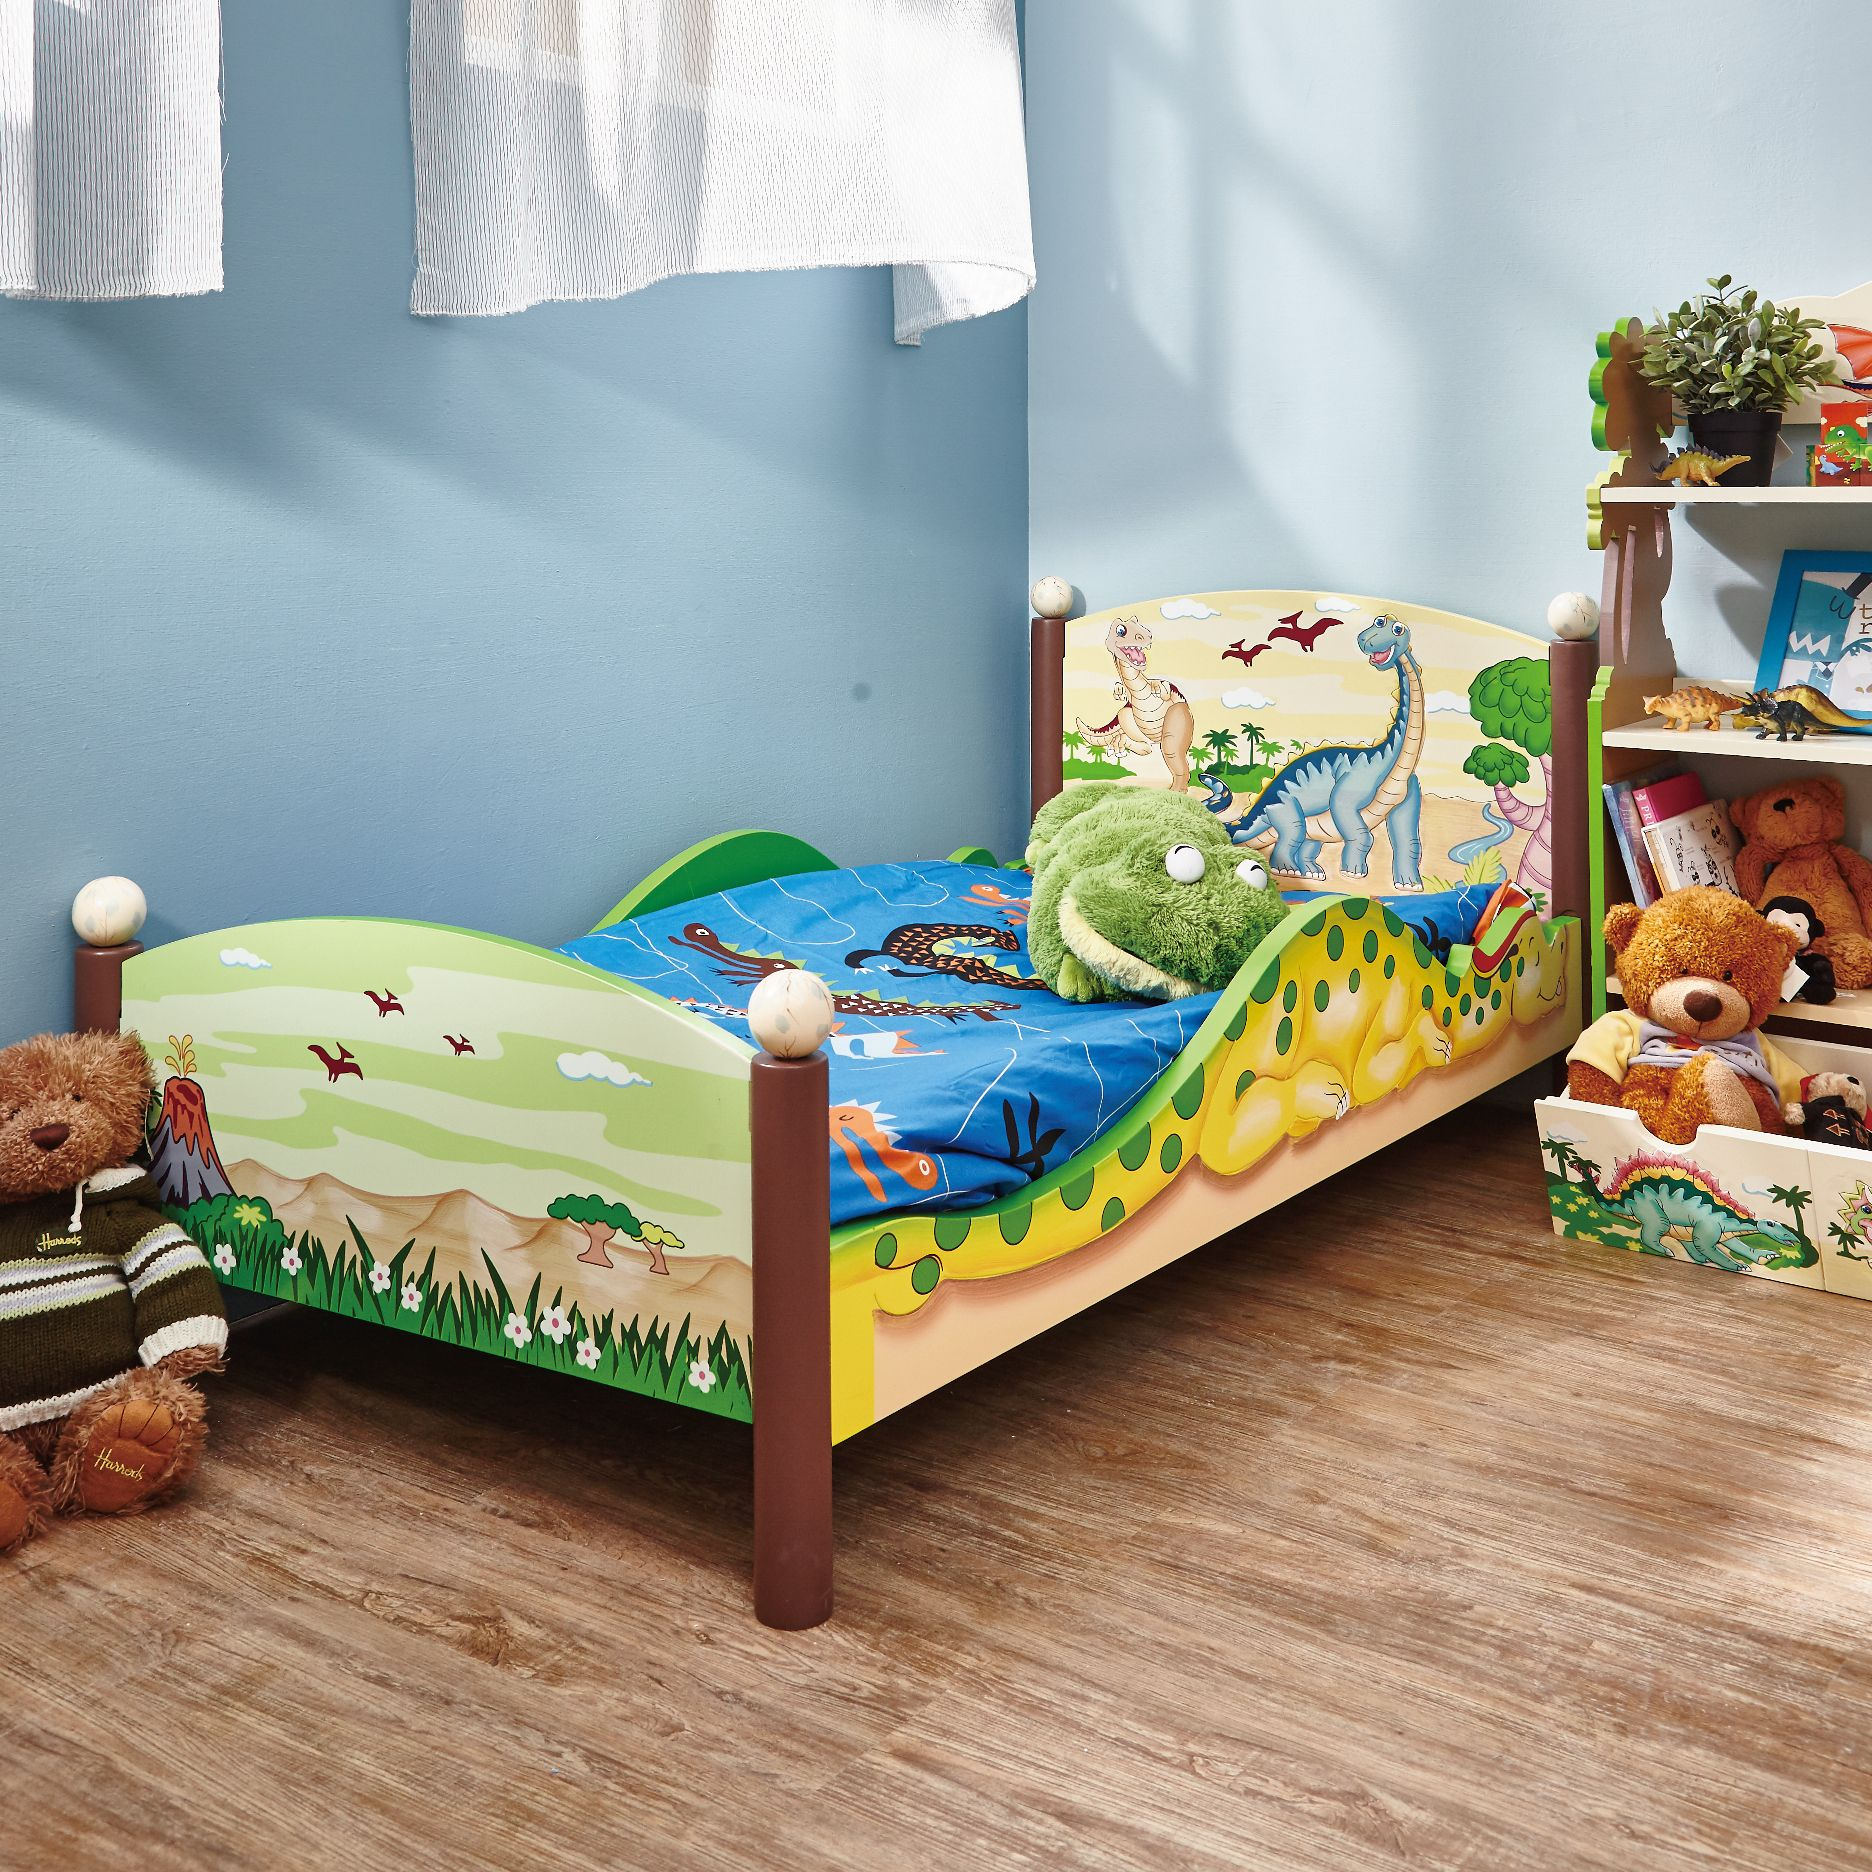 Fantasy Fields Dinosaur Kingdom Toddler Bed Kids Bedroom Ideas Dinosaurs Pinterest